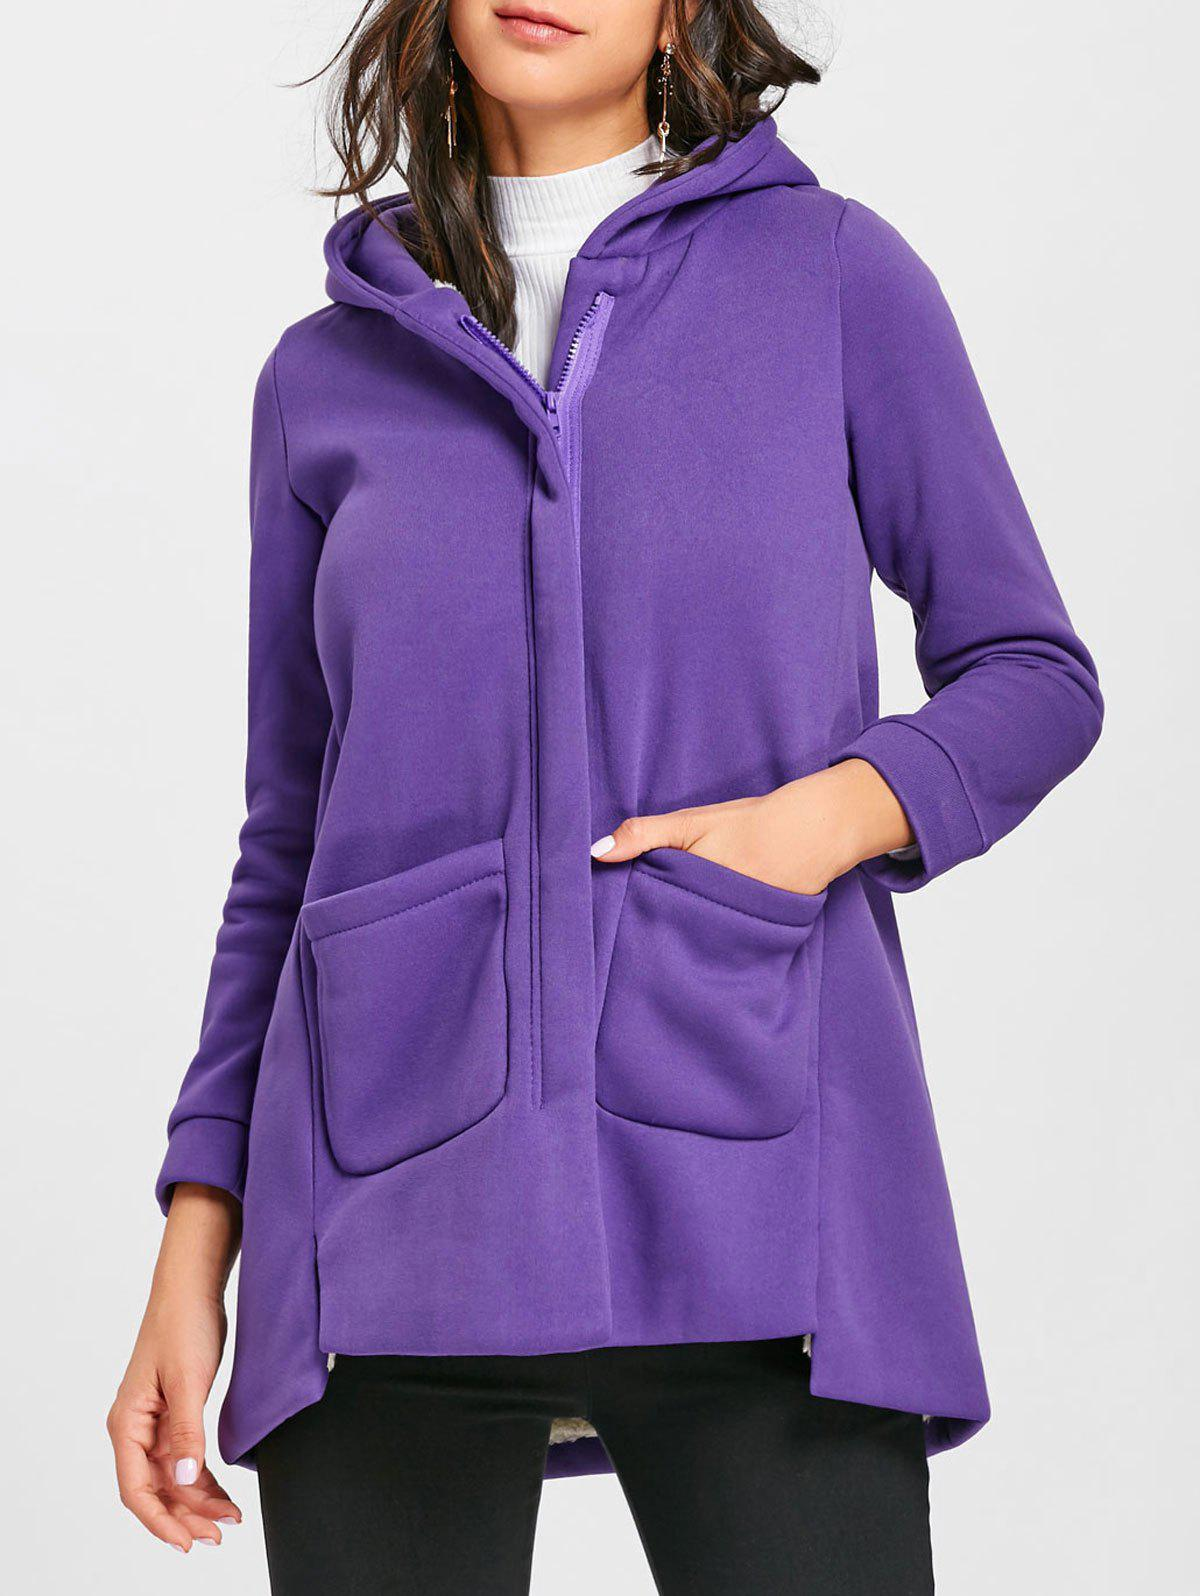 Manteau long zippé à capuche - Pourpre M